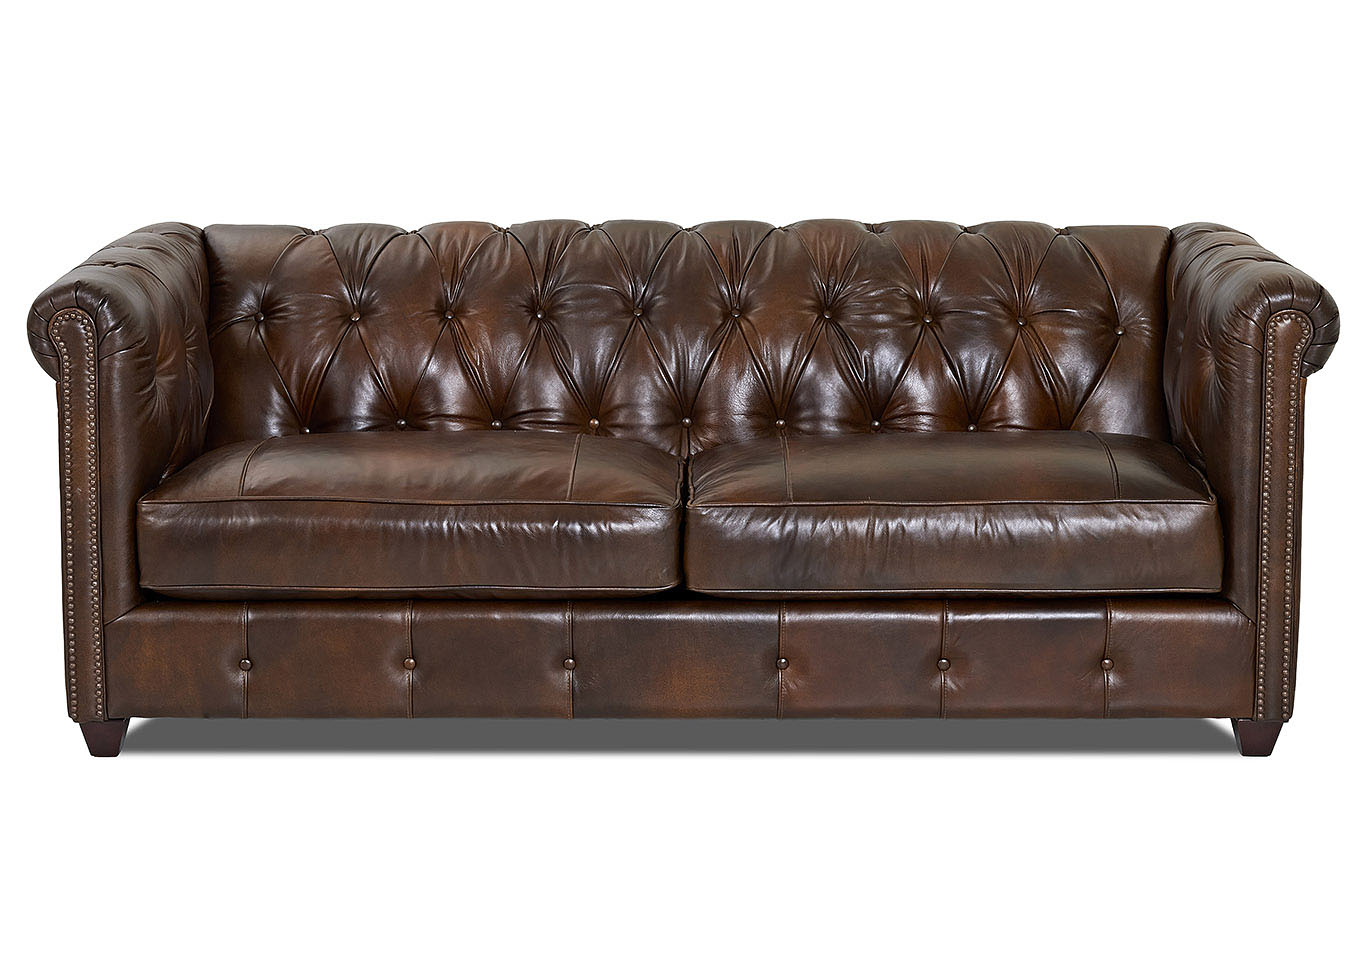 Attrayant Beech Mountain Chesterfield Whiskey Leather Stationary Sofa,Klaussner Home  Furnishings